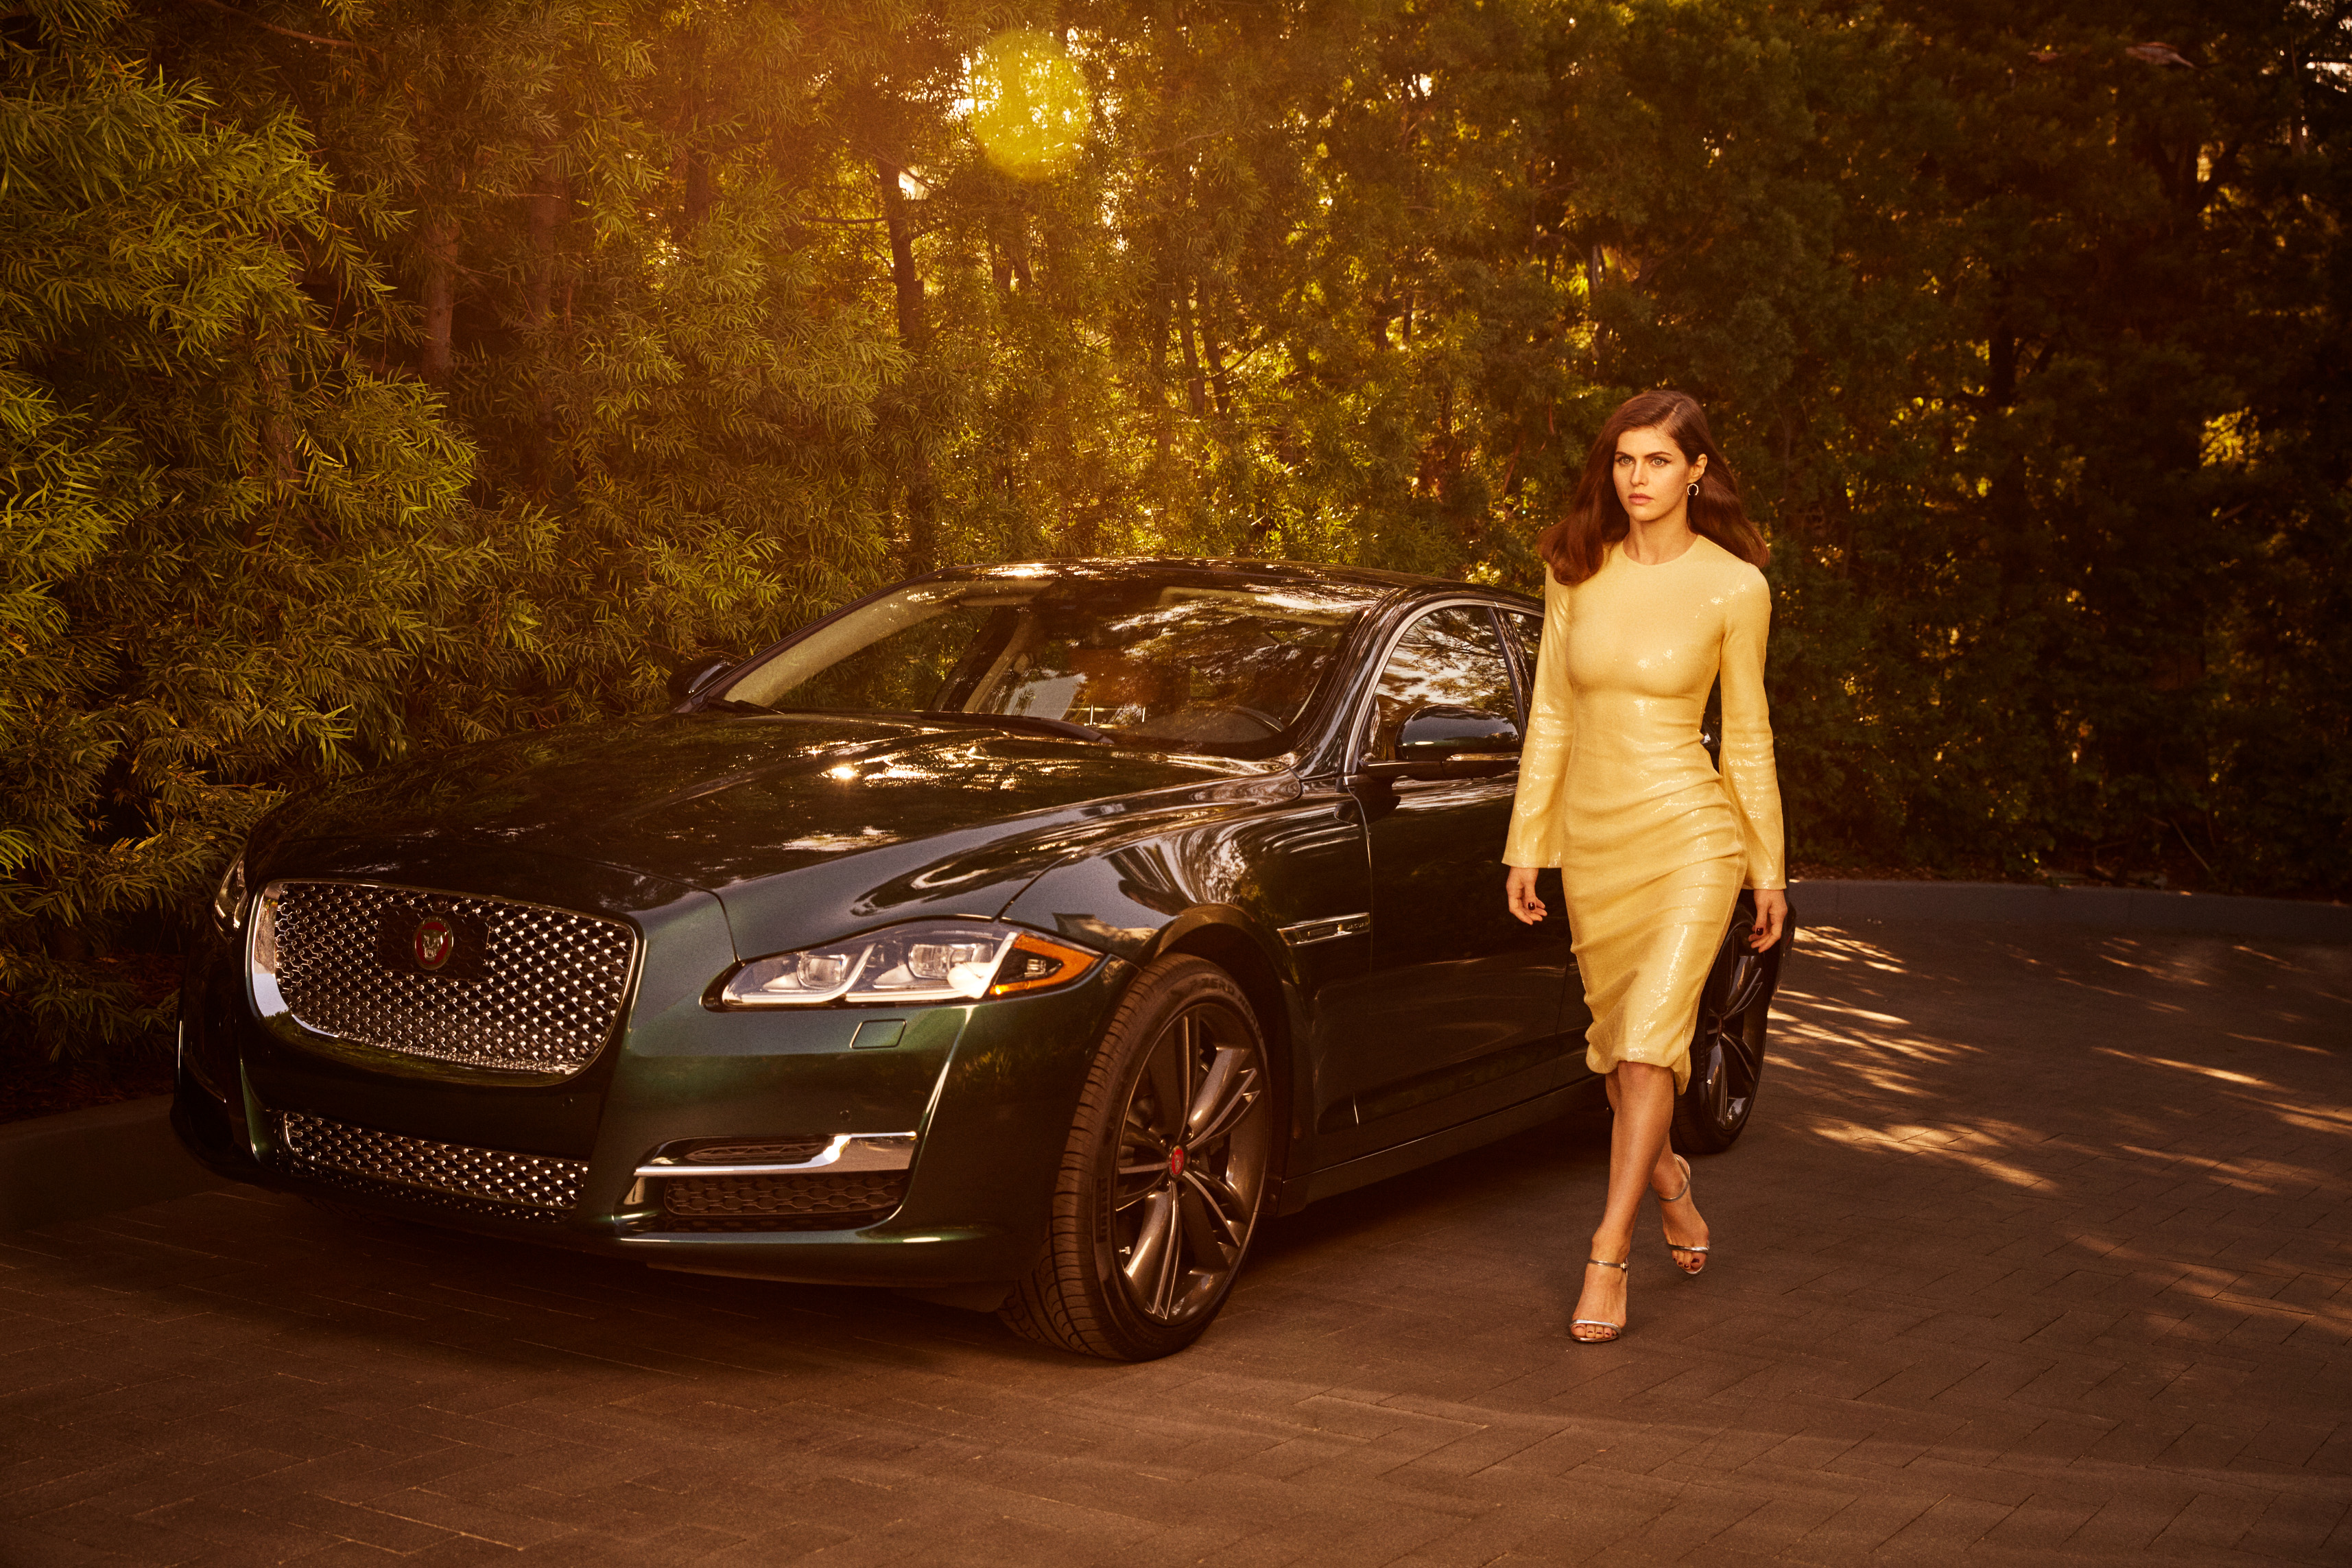 New Collection Special Edition Model Joins 2019 Jaguar Xj Line Up Jlr Corporate Homepage Usa